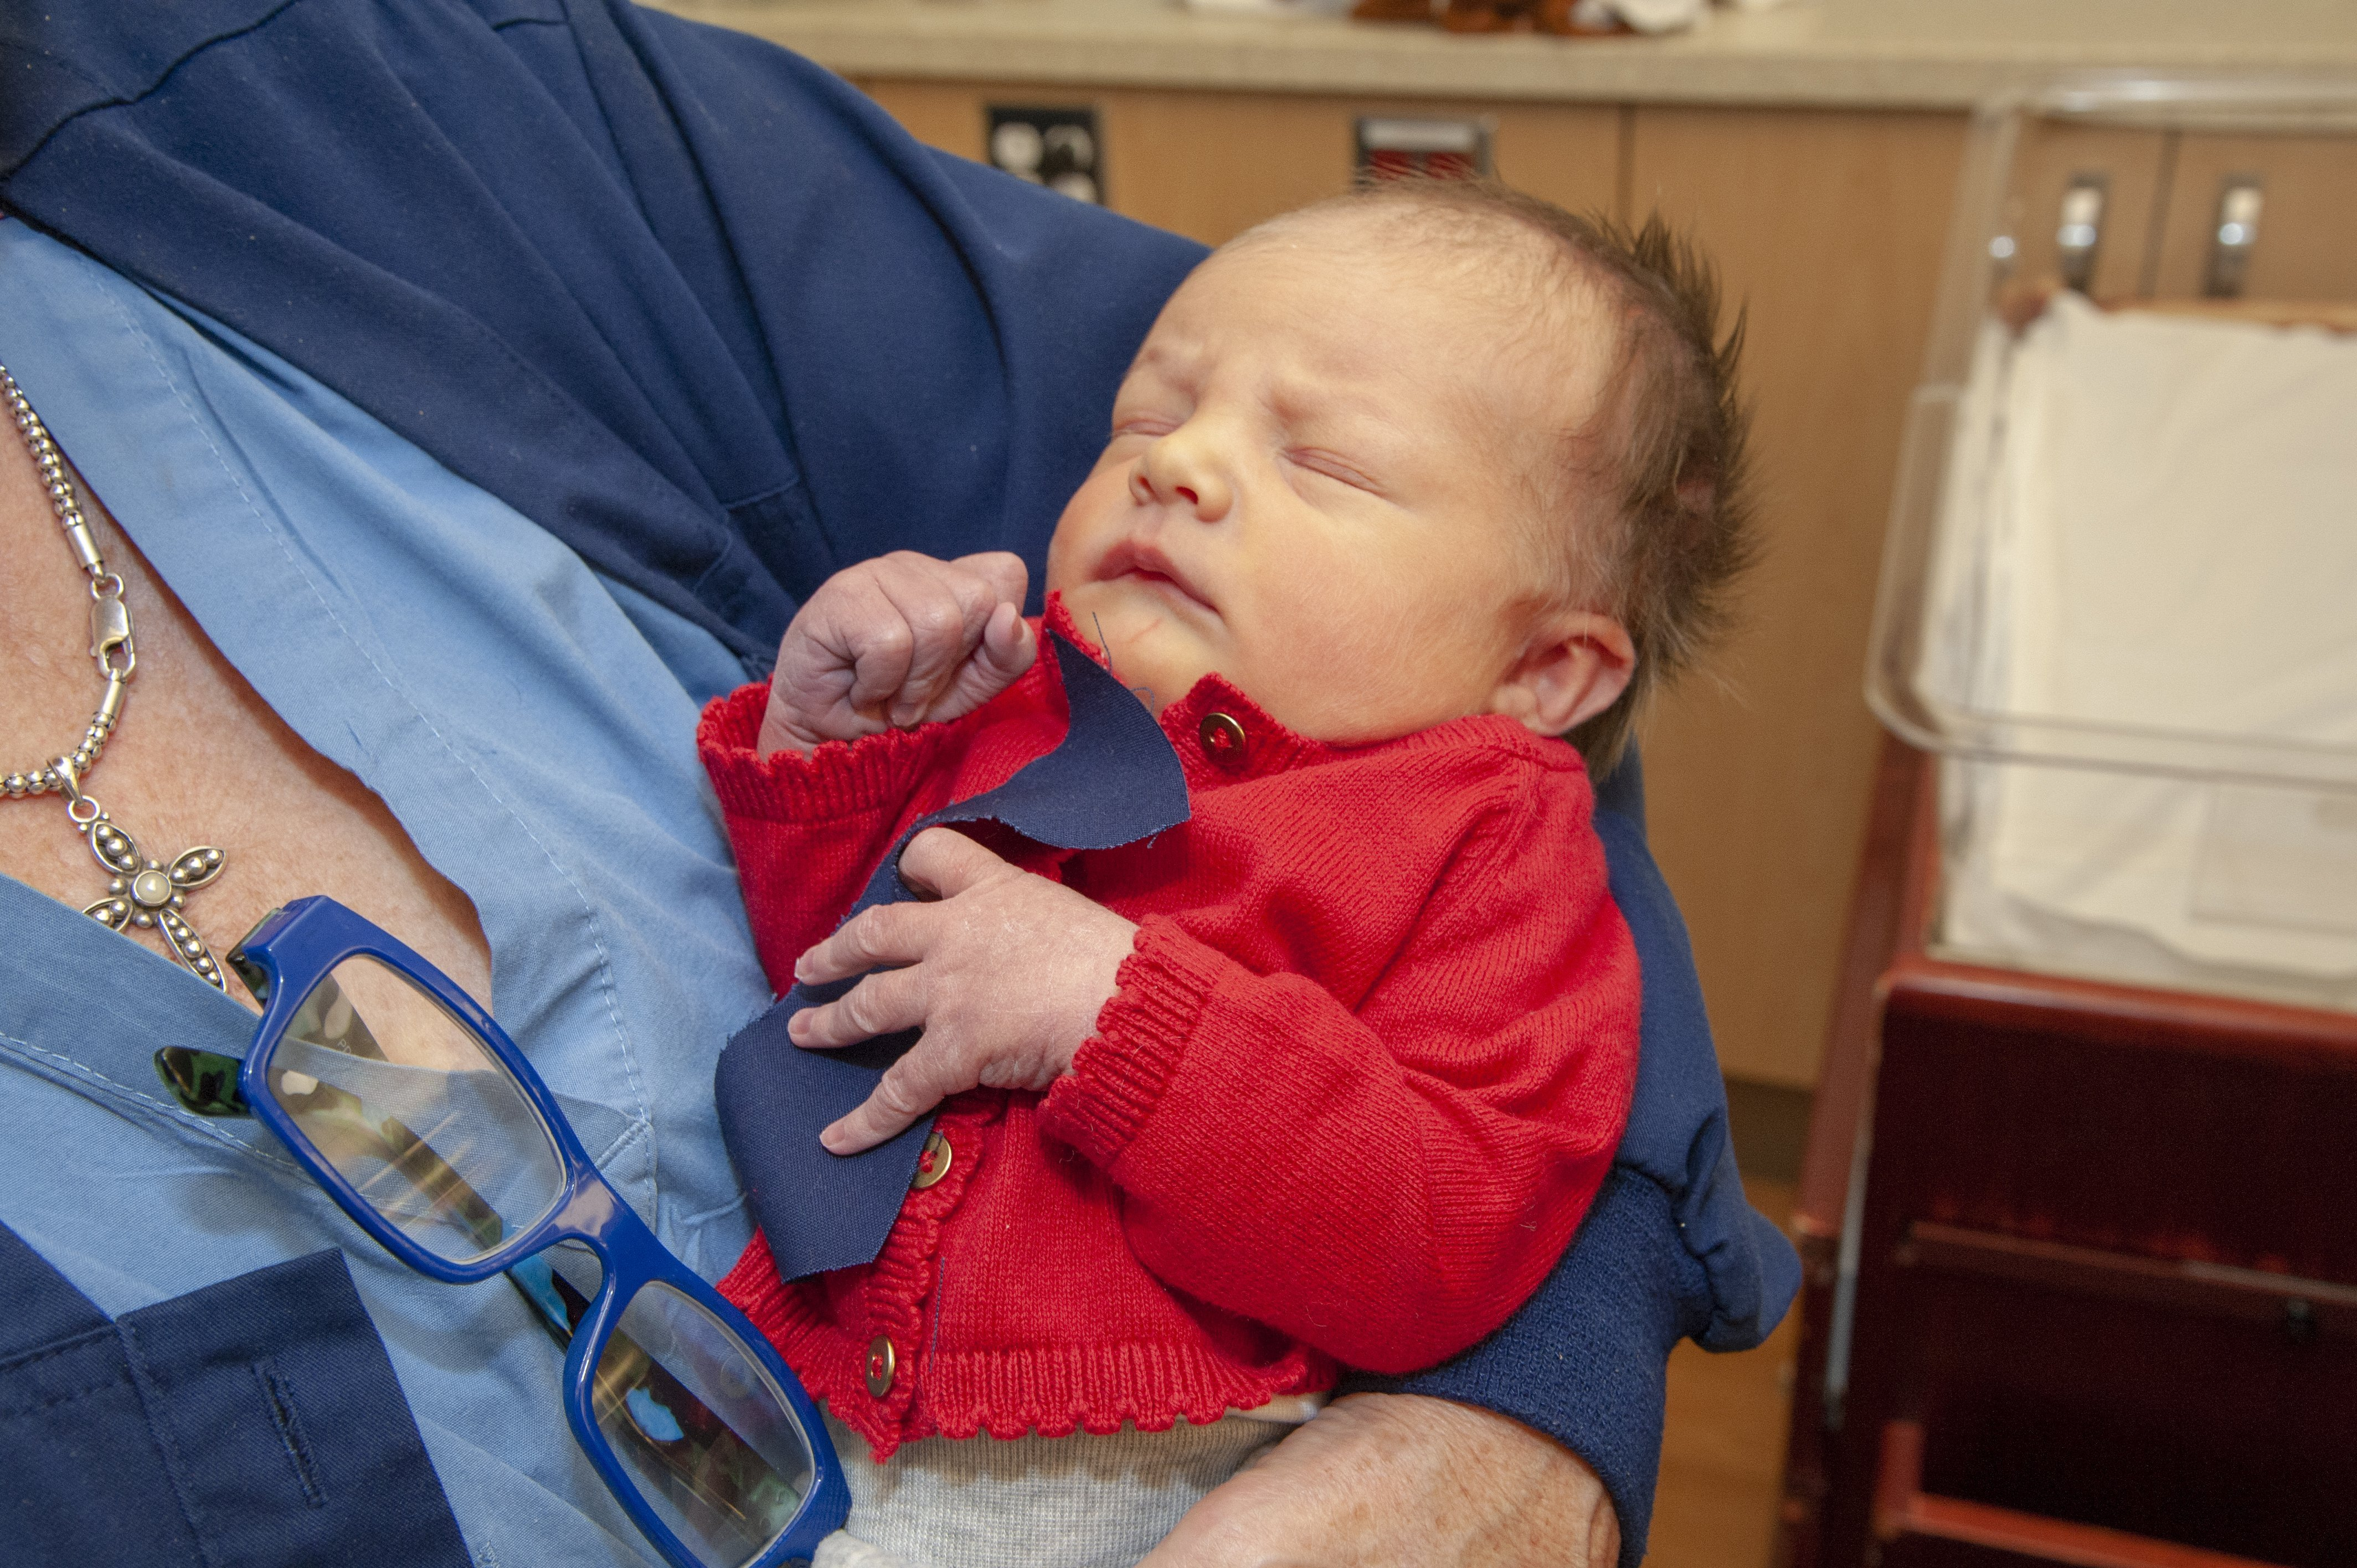 Newborn babies at a Pittsburgh hospital dressed up as Mister Rogers for Cardigan Day